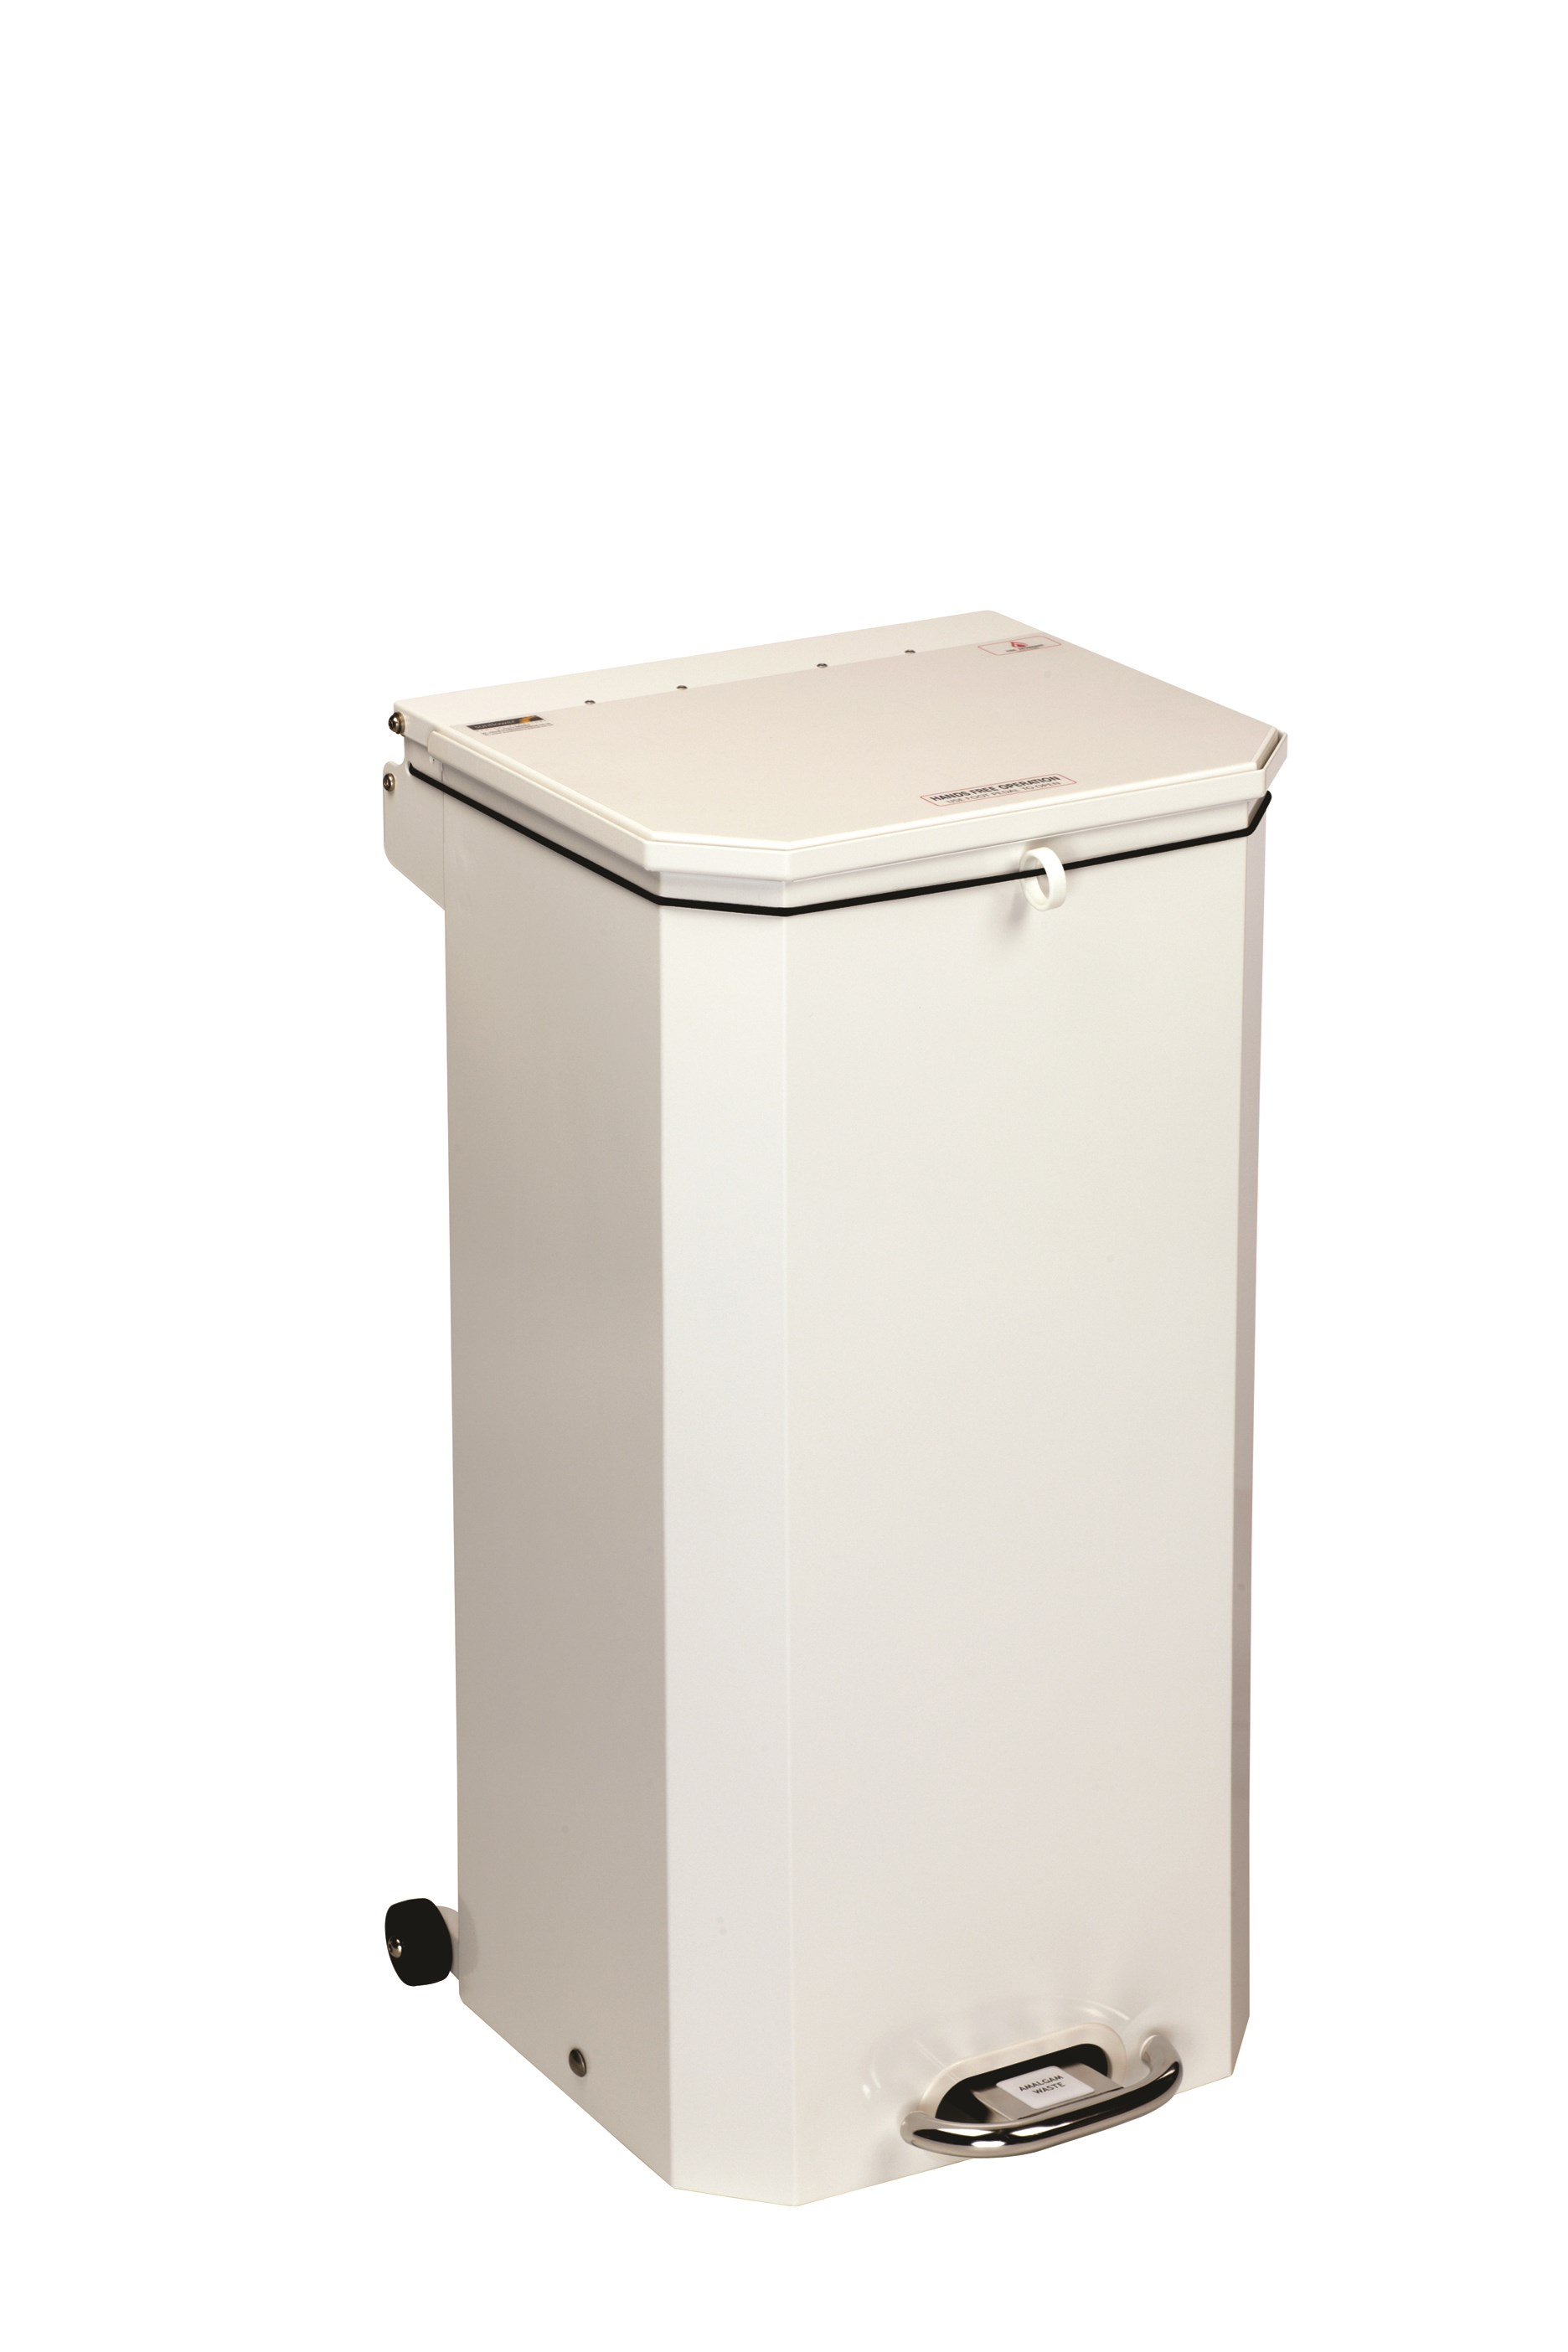 BIN PEDAL 70 LTR WITH WHITE LID FOR AMALGAM WASTE